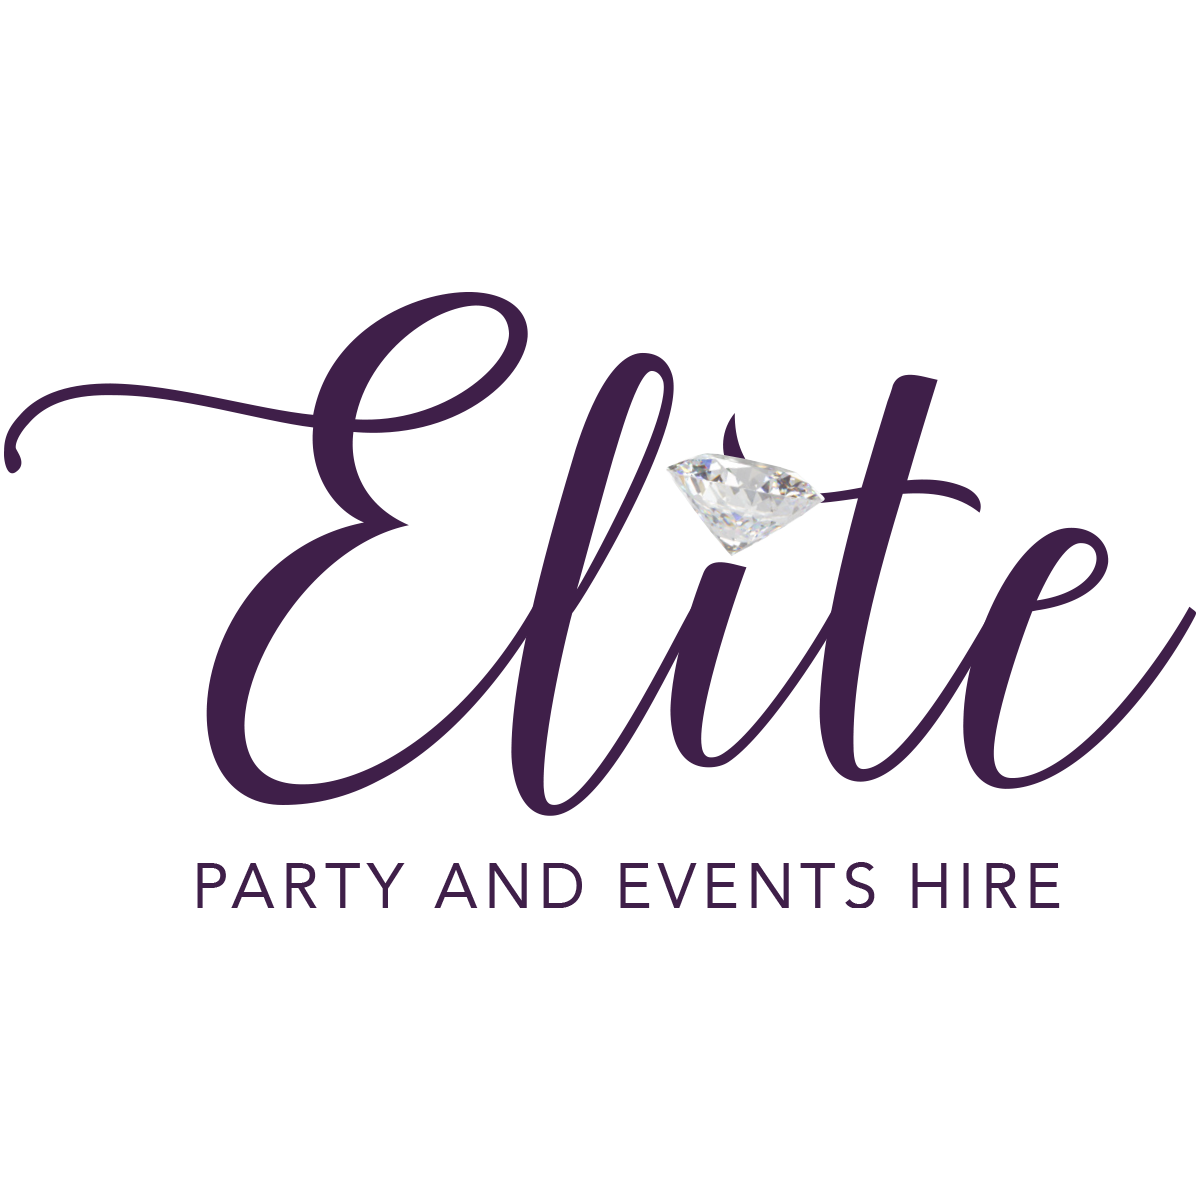 elitepartyandeventhire.co.uk